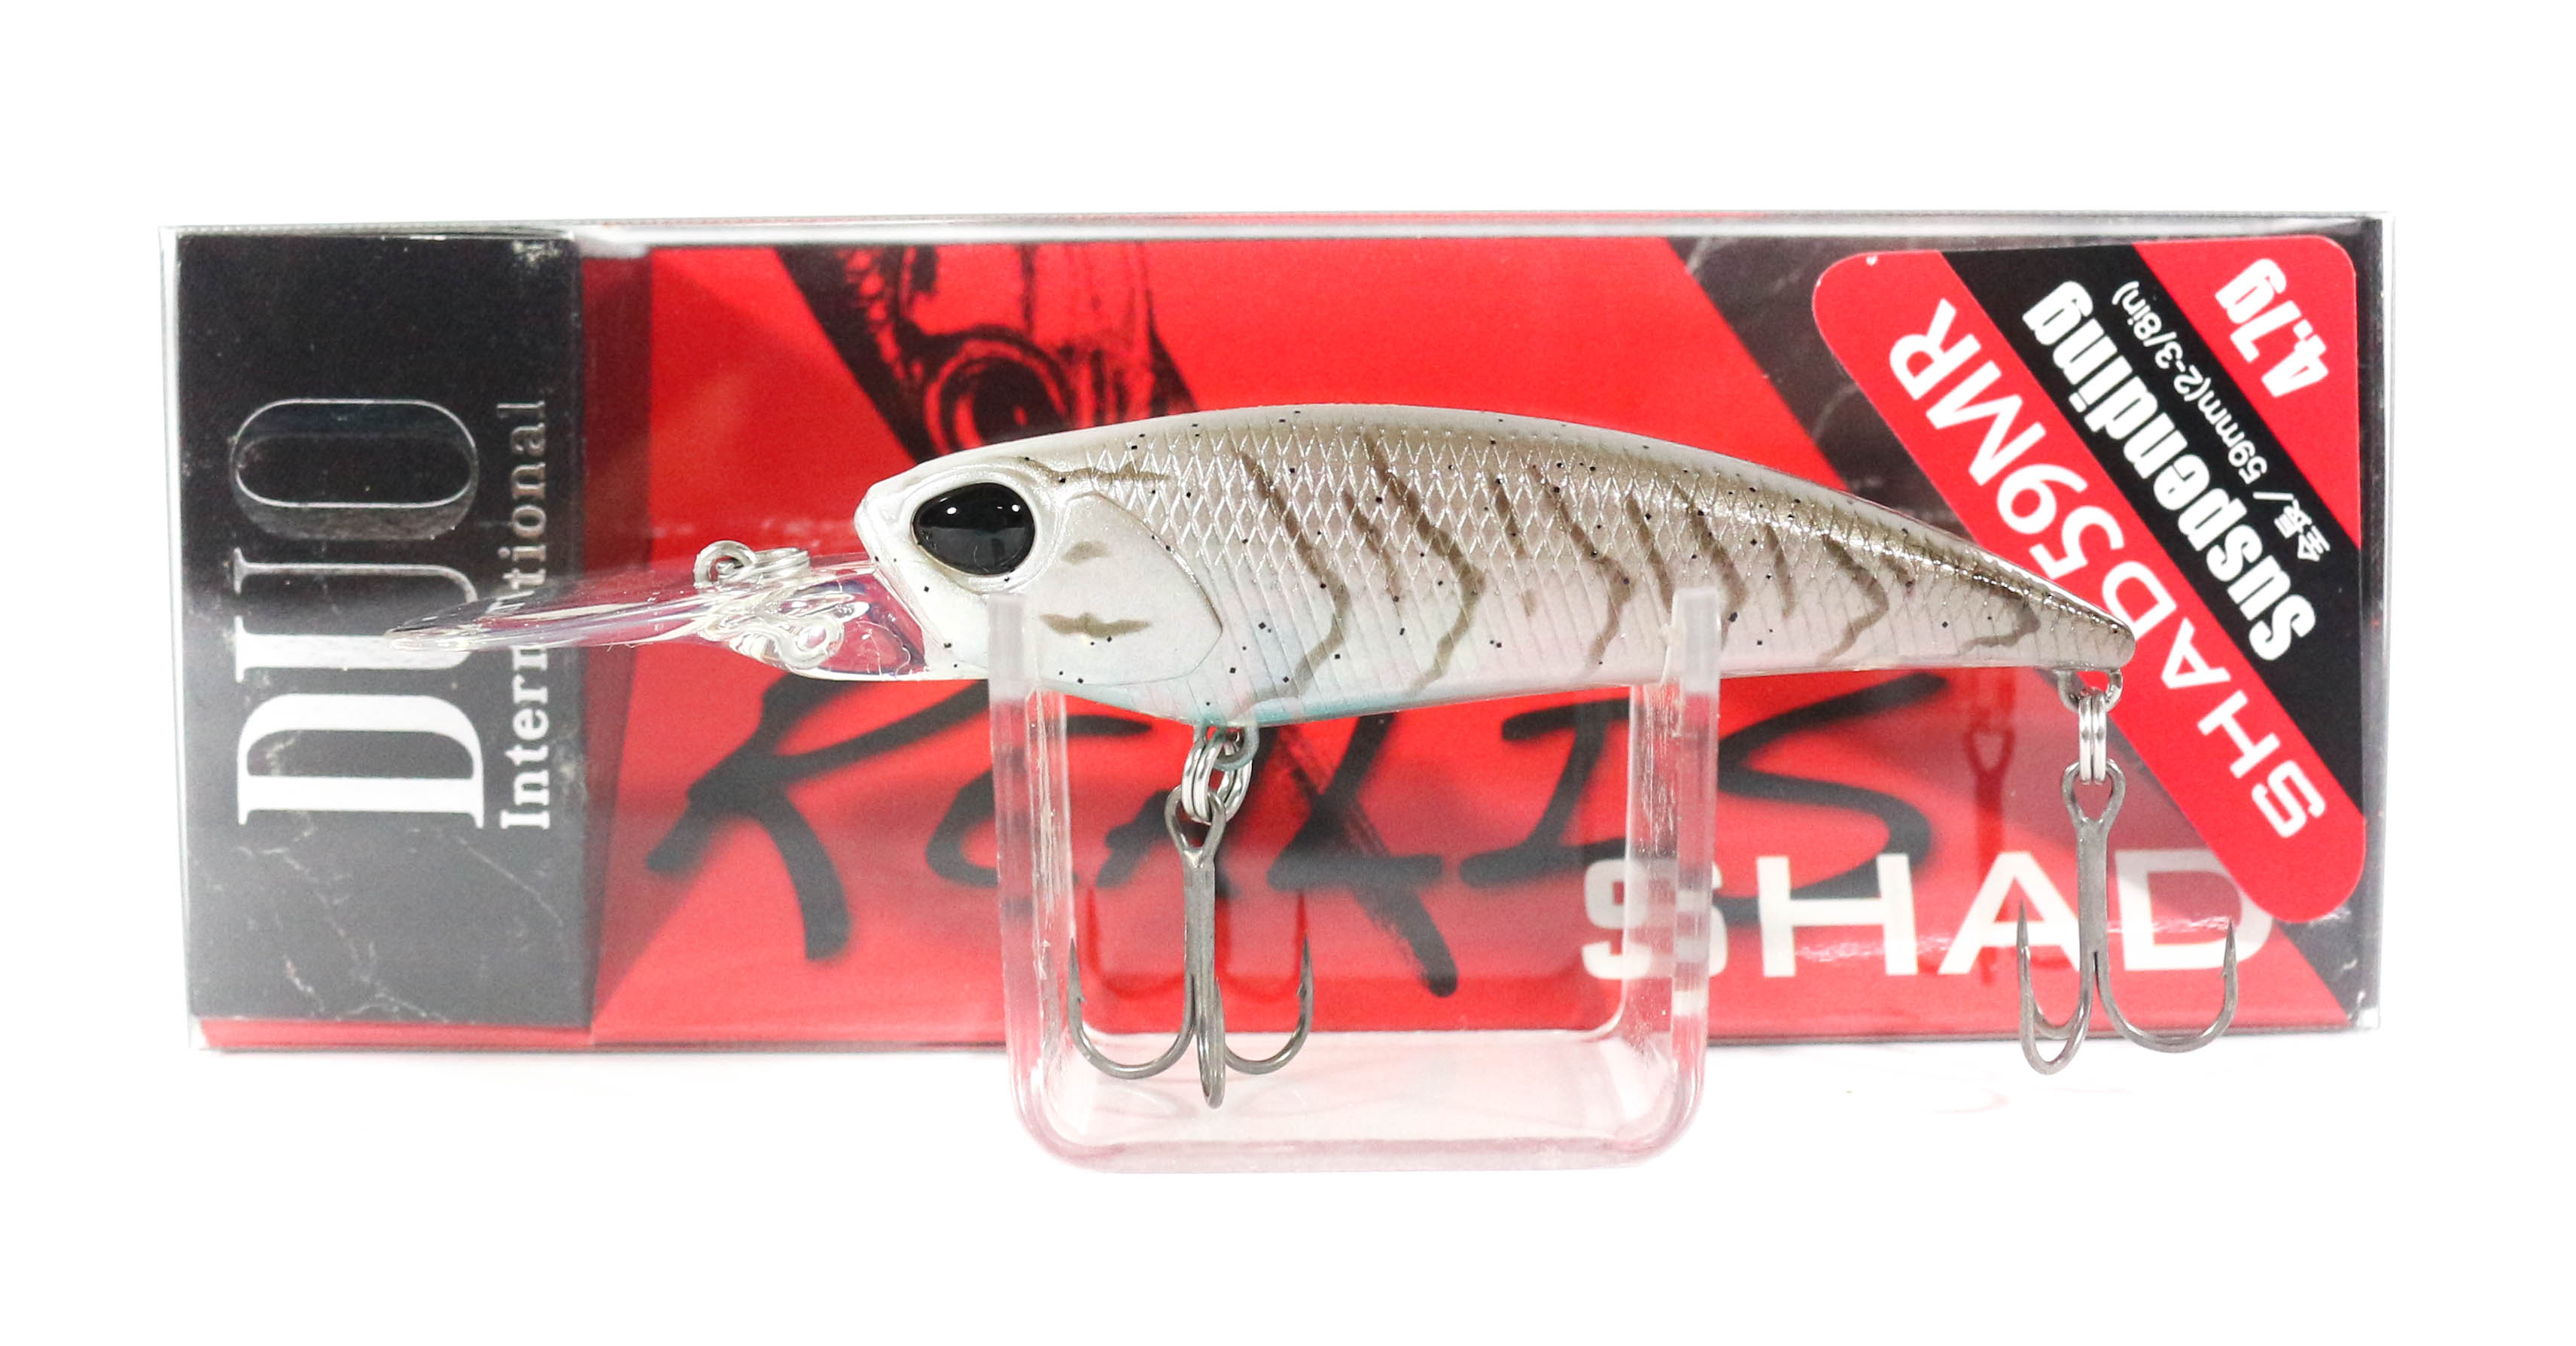 Duo Realis Shad 59 MR Suspend Lure CCC3224 (5444)